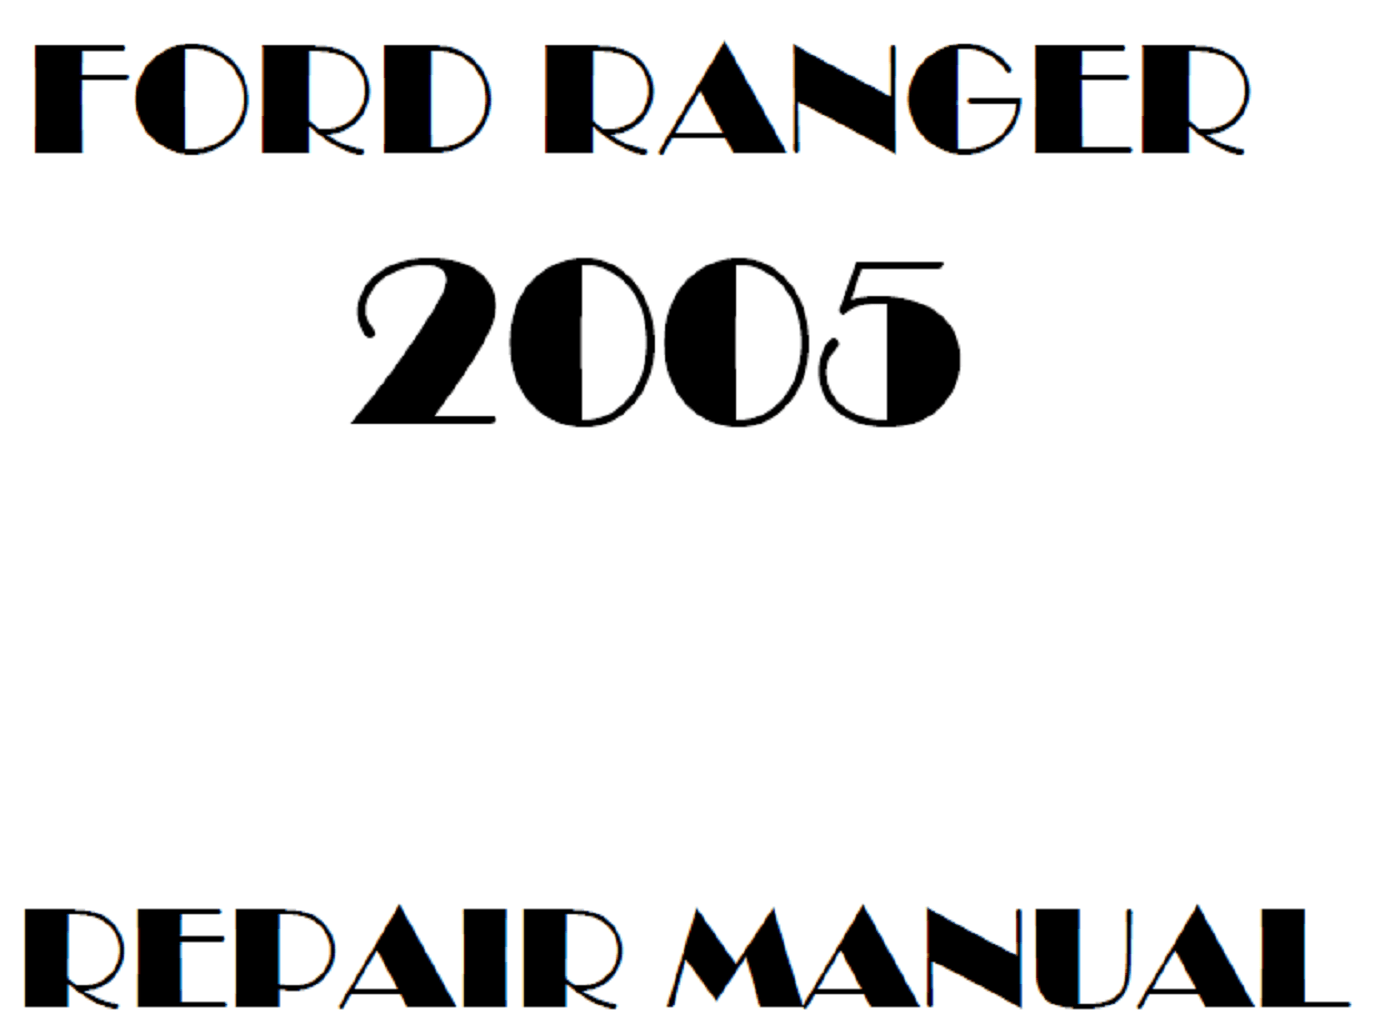 2005 Ford Ranger repair manual